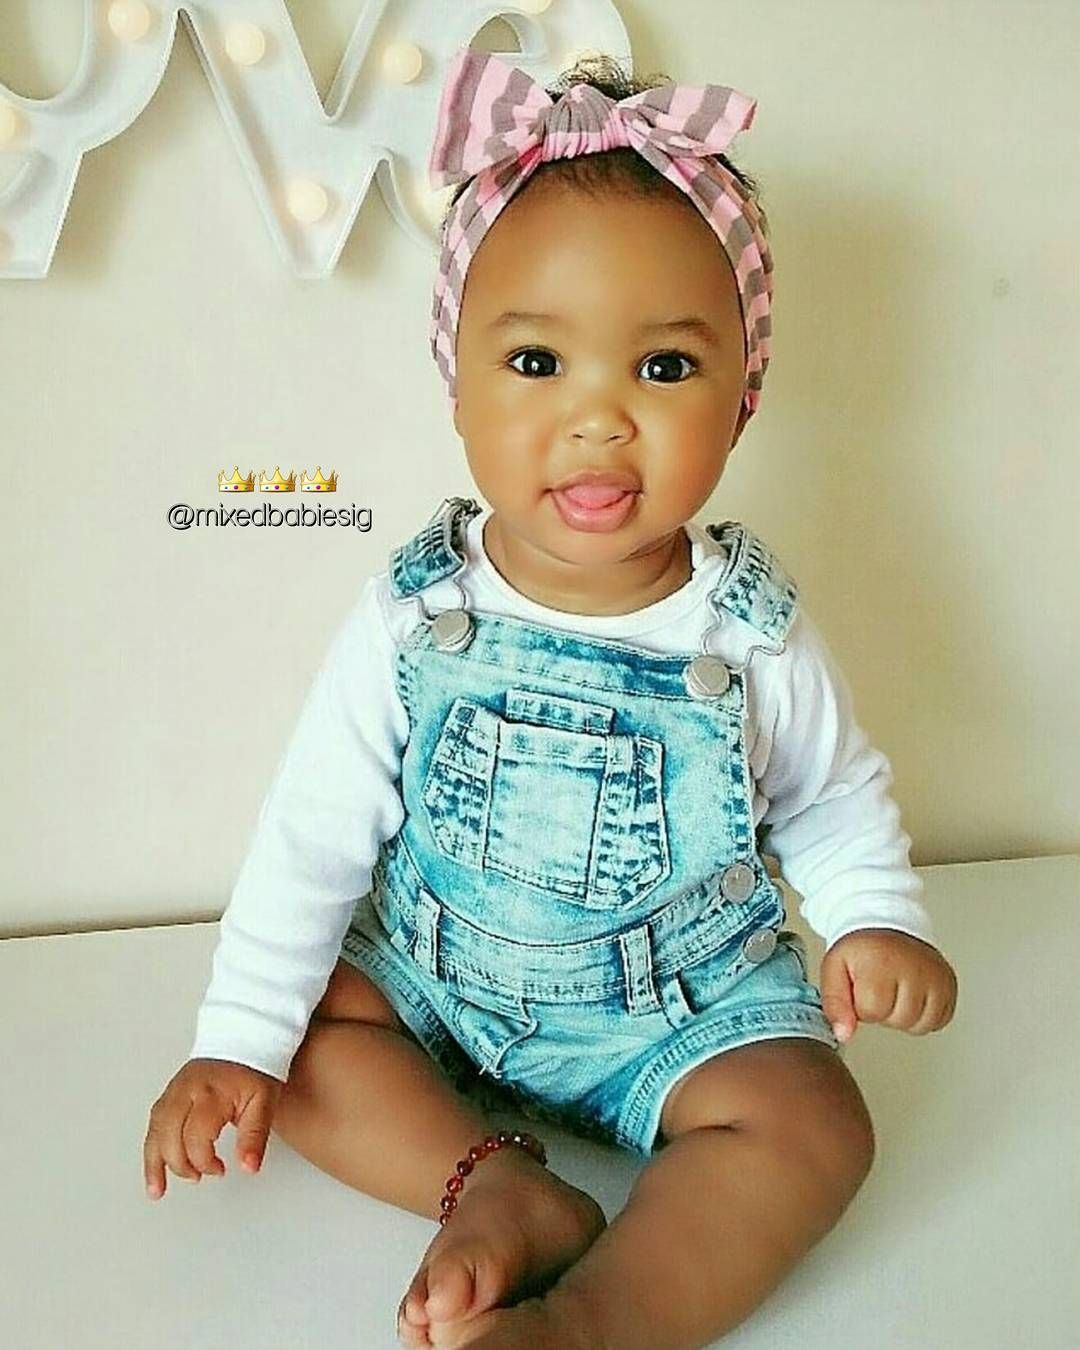 Pin by itu Hlagala on family | Pinterest | Babies, Baby fever and ...